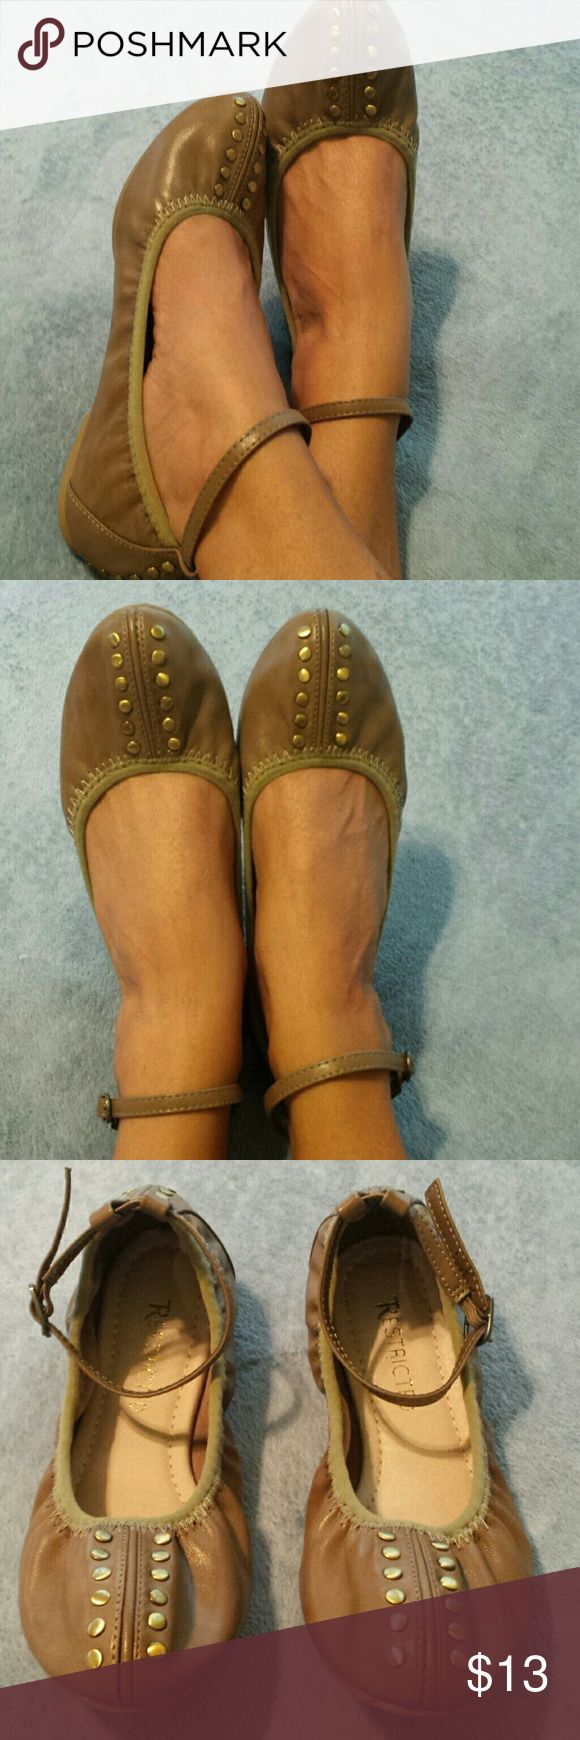 Cute Flats w/Ankle Straps by Restricted. Sz. 6. Very cute and comfortable flats with ankle straps by Restricted. No stains, holes, knicks, or markings. Good used condition. Size 6. Restricted Shoes Flats & Loafers